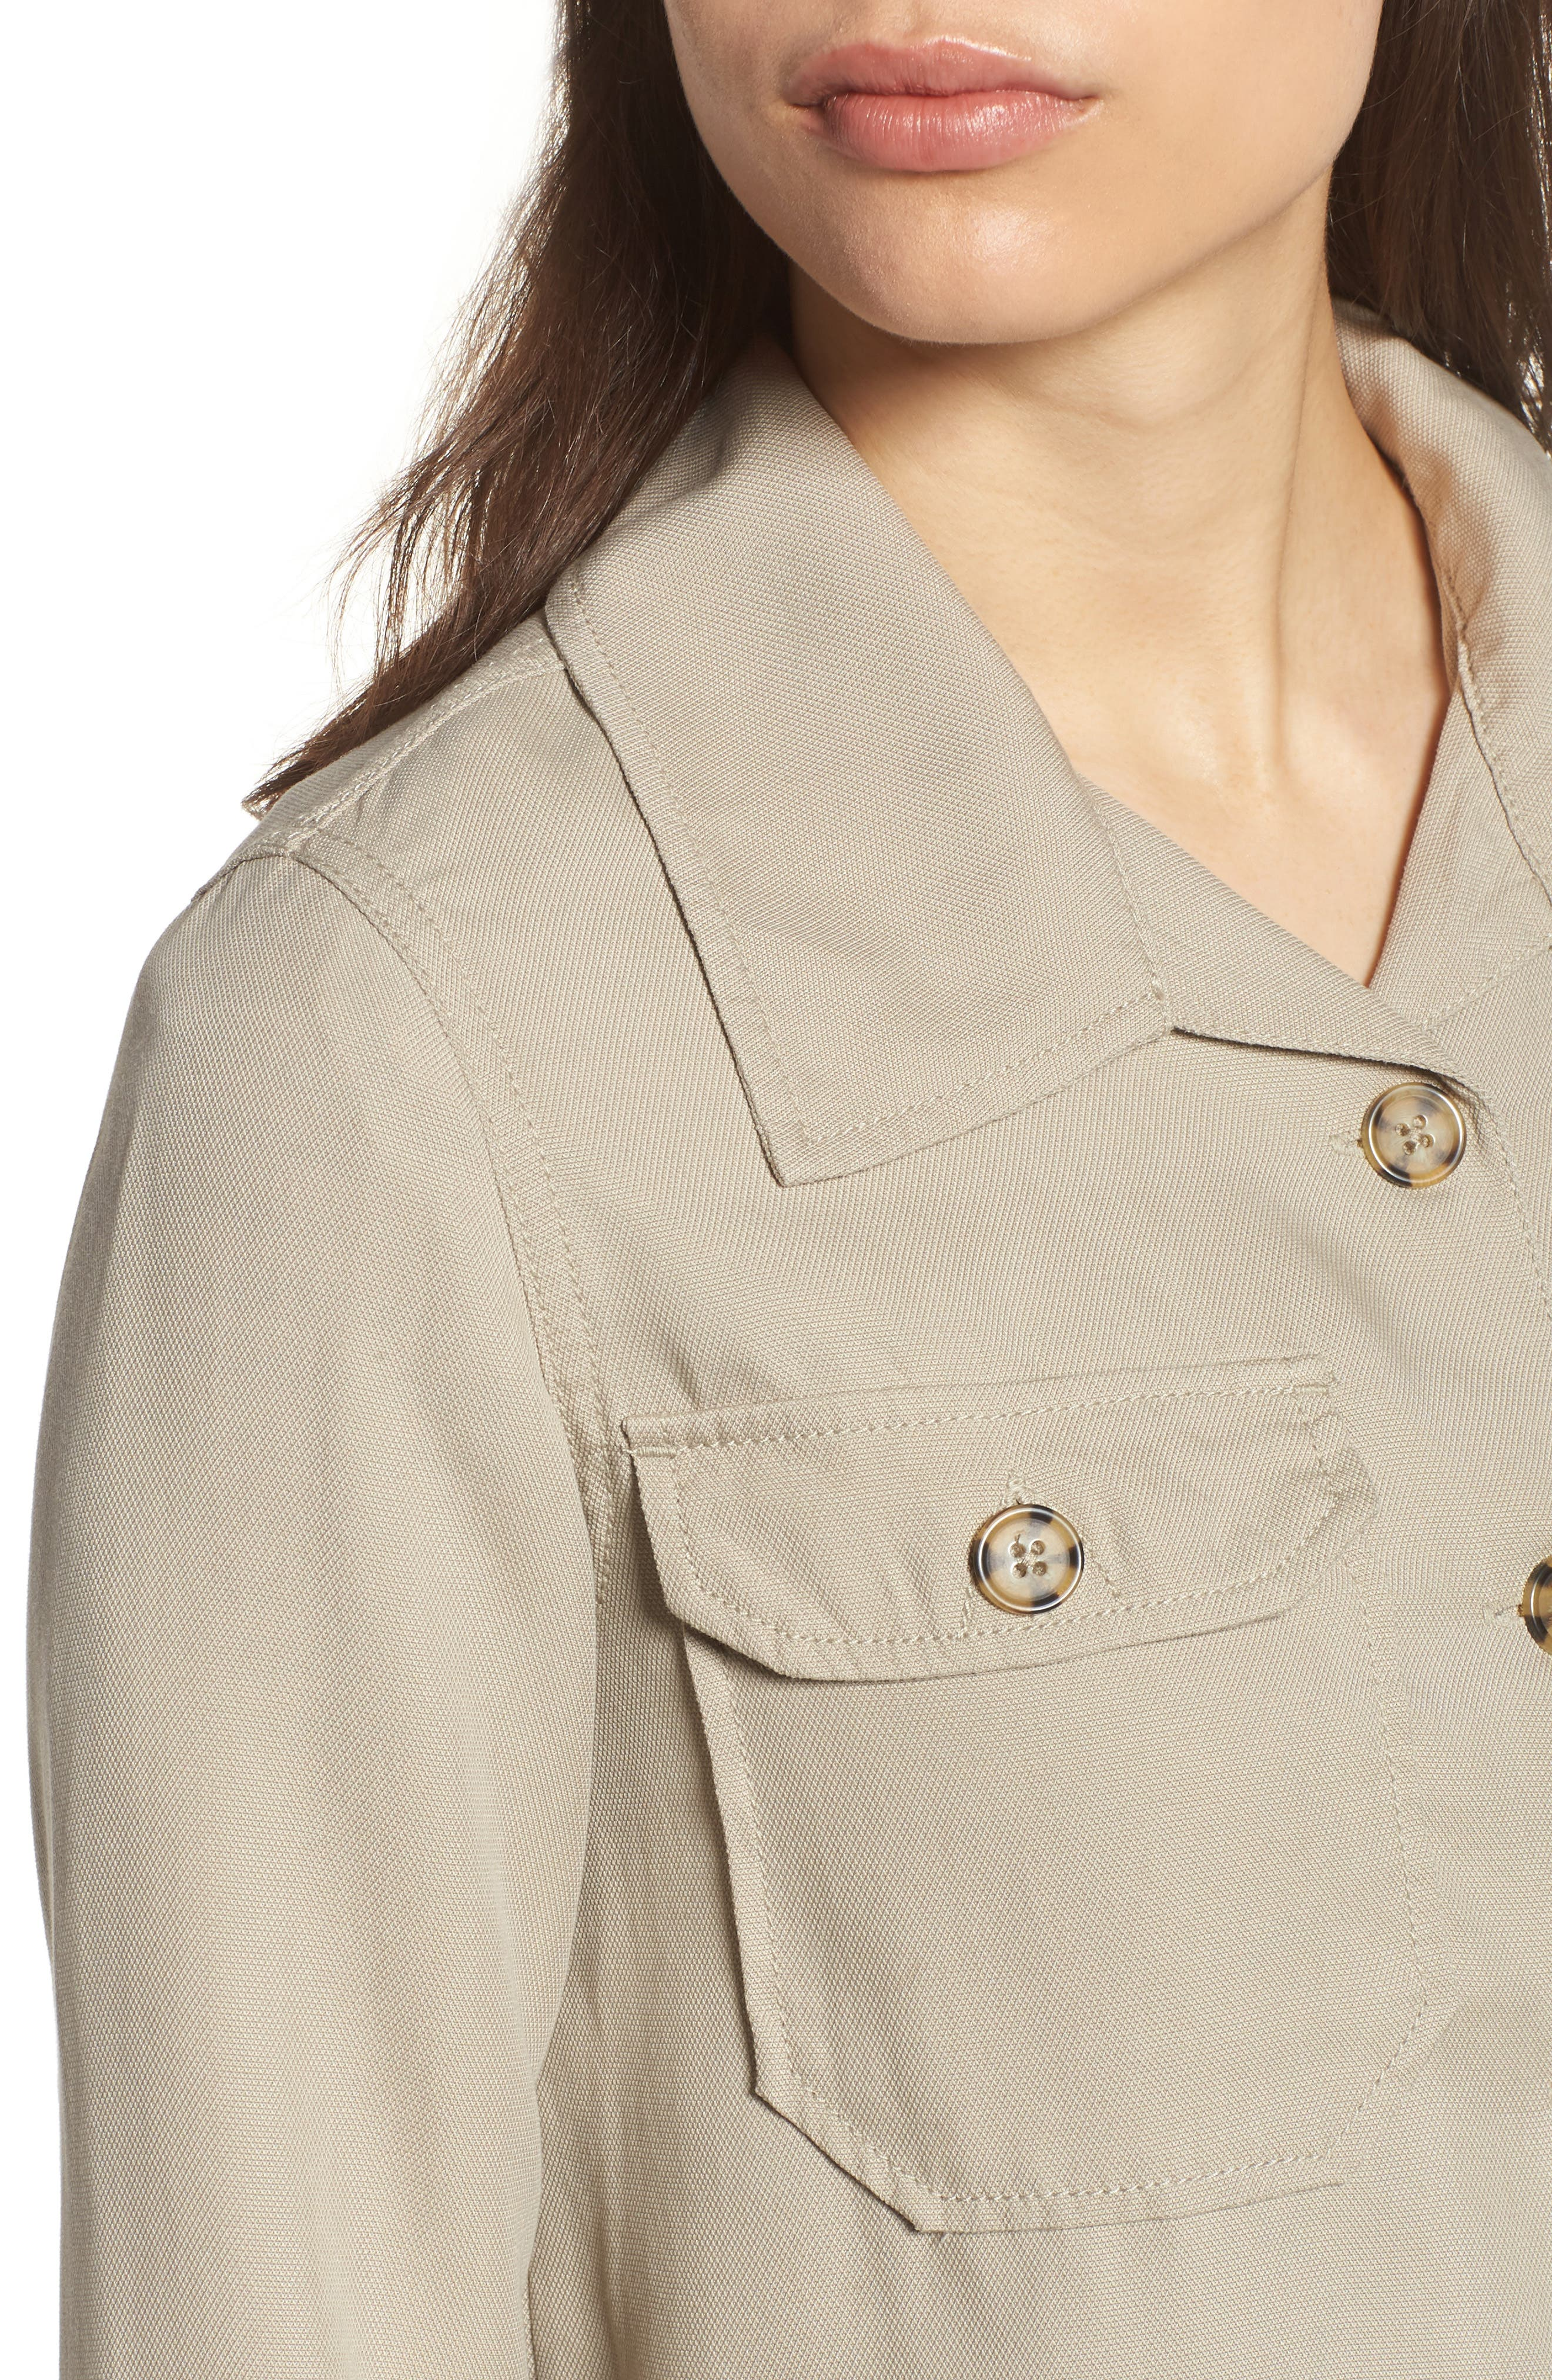 Flyaway Shirt Jacket,                             Alternate thumbnail 4, color,                             028